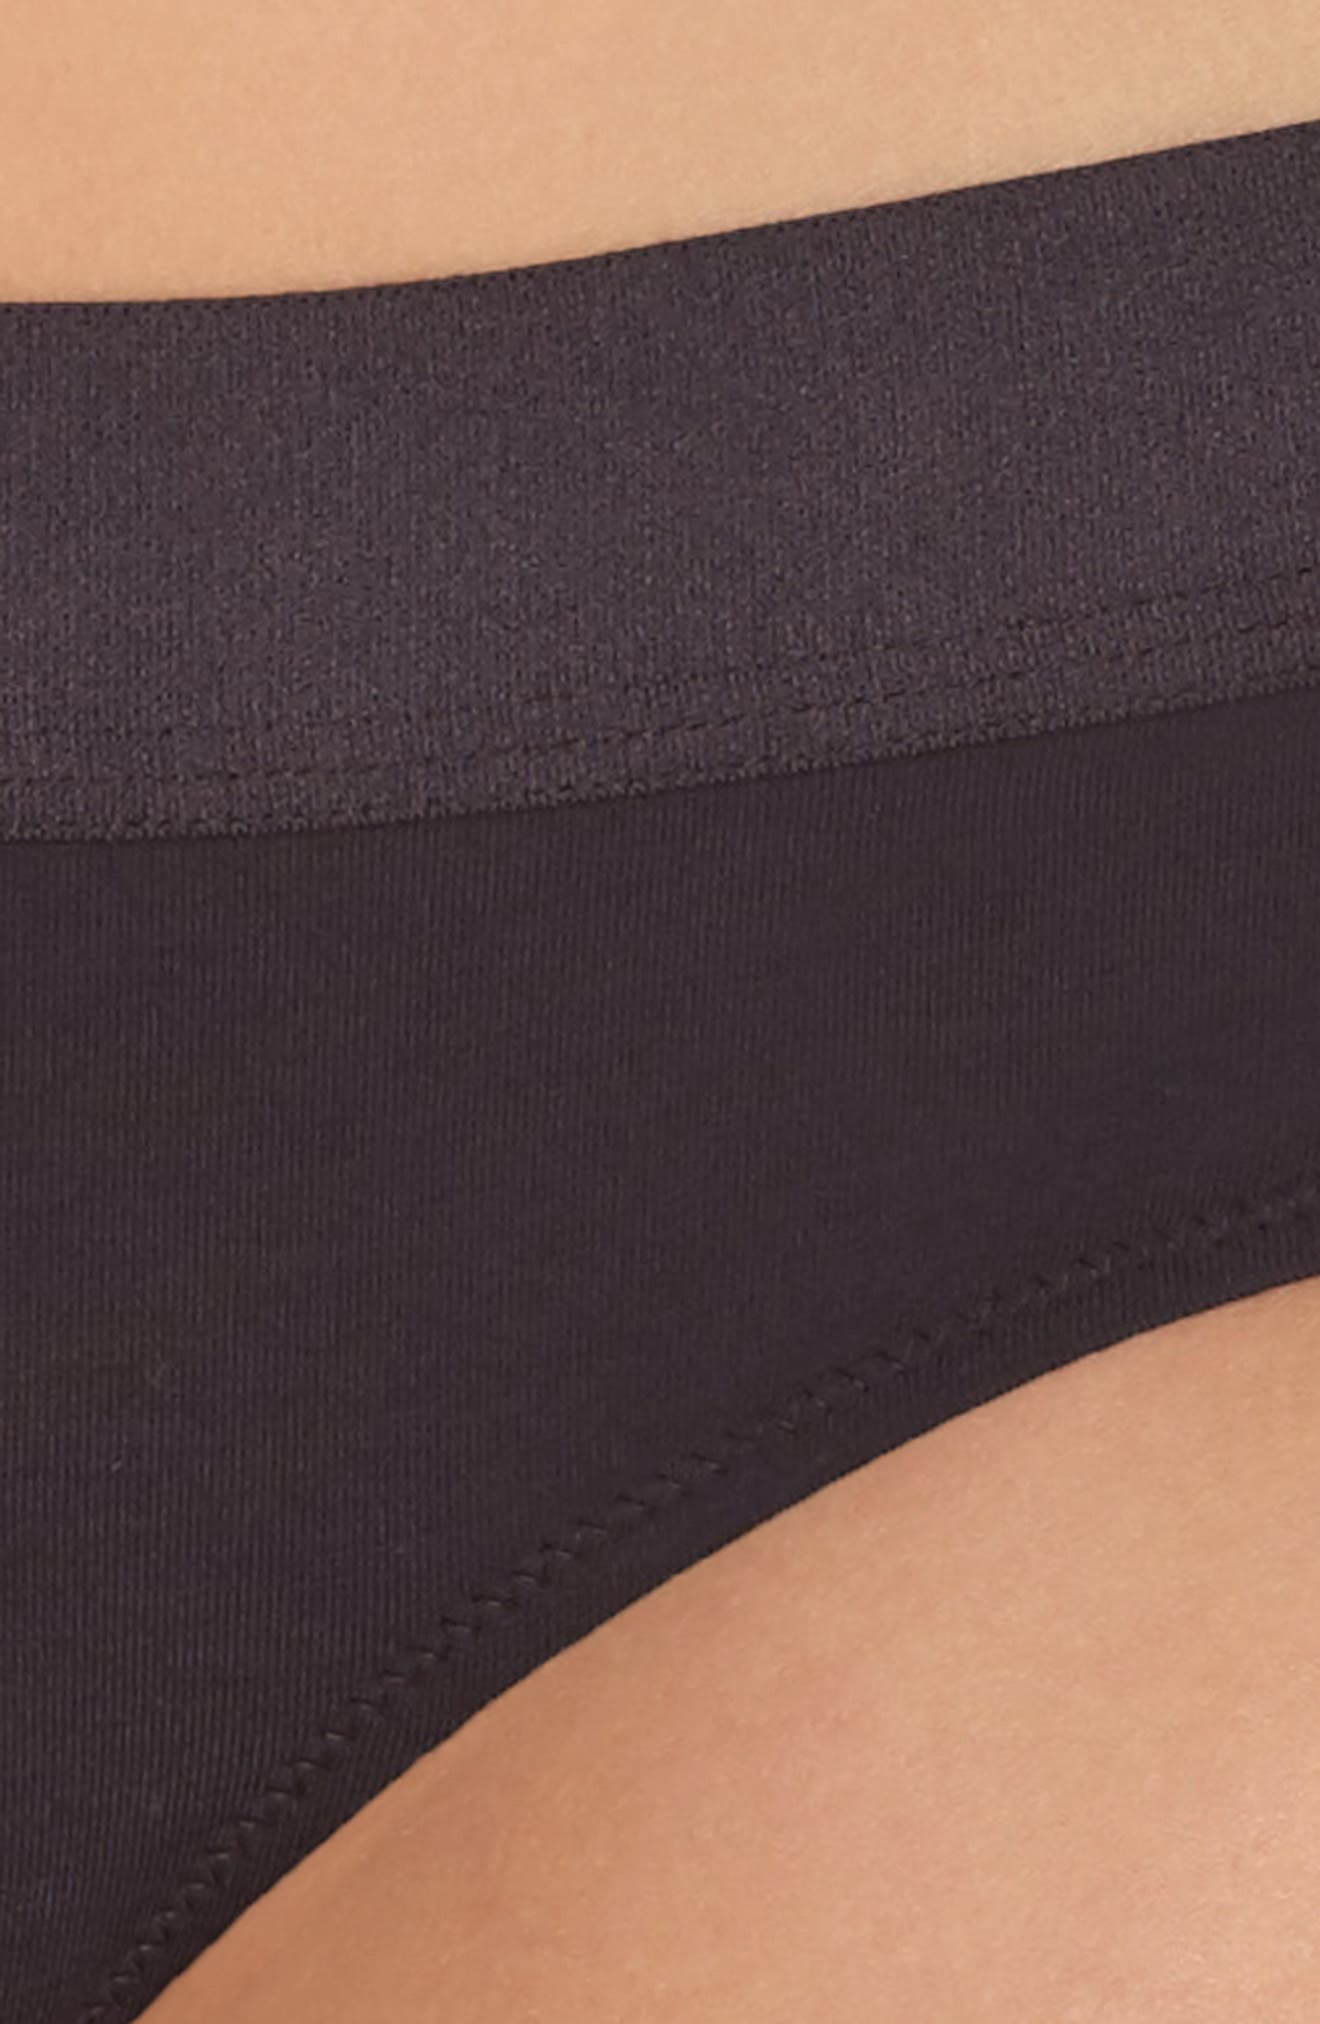 Hadlee Hipster Briefs,                             Alternate thumbnail 11, color,